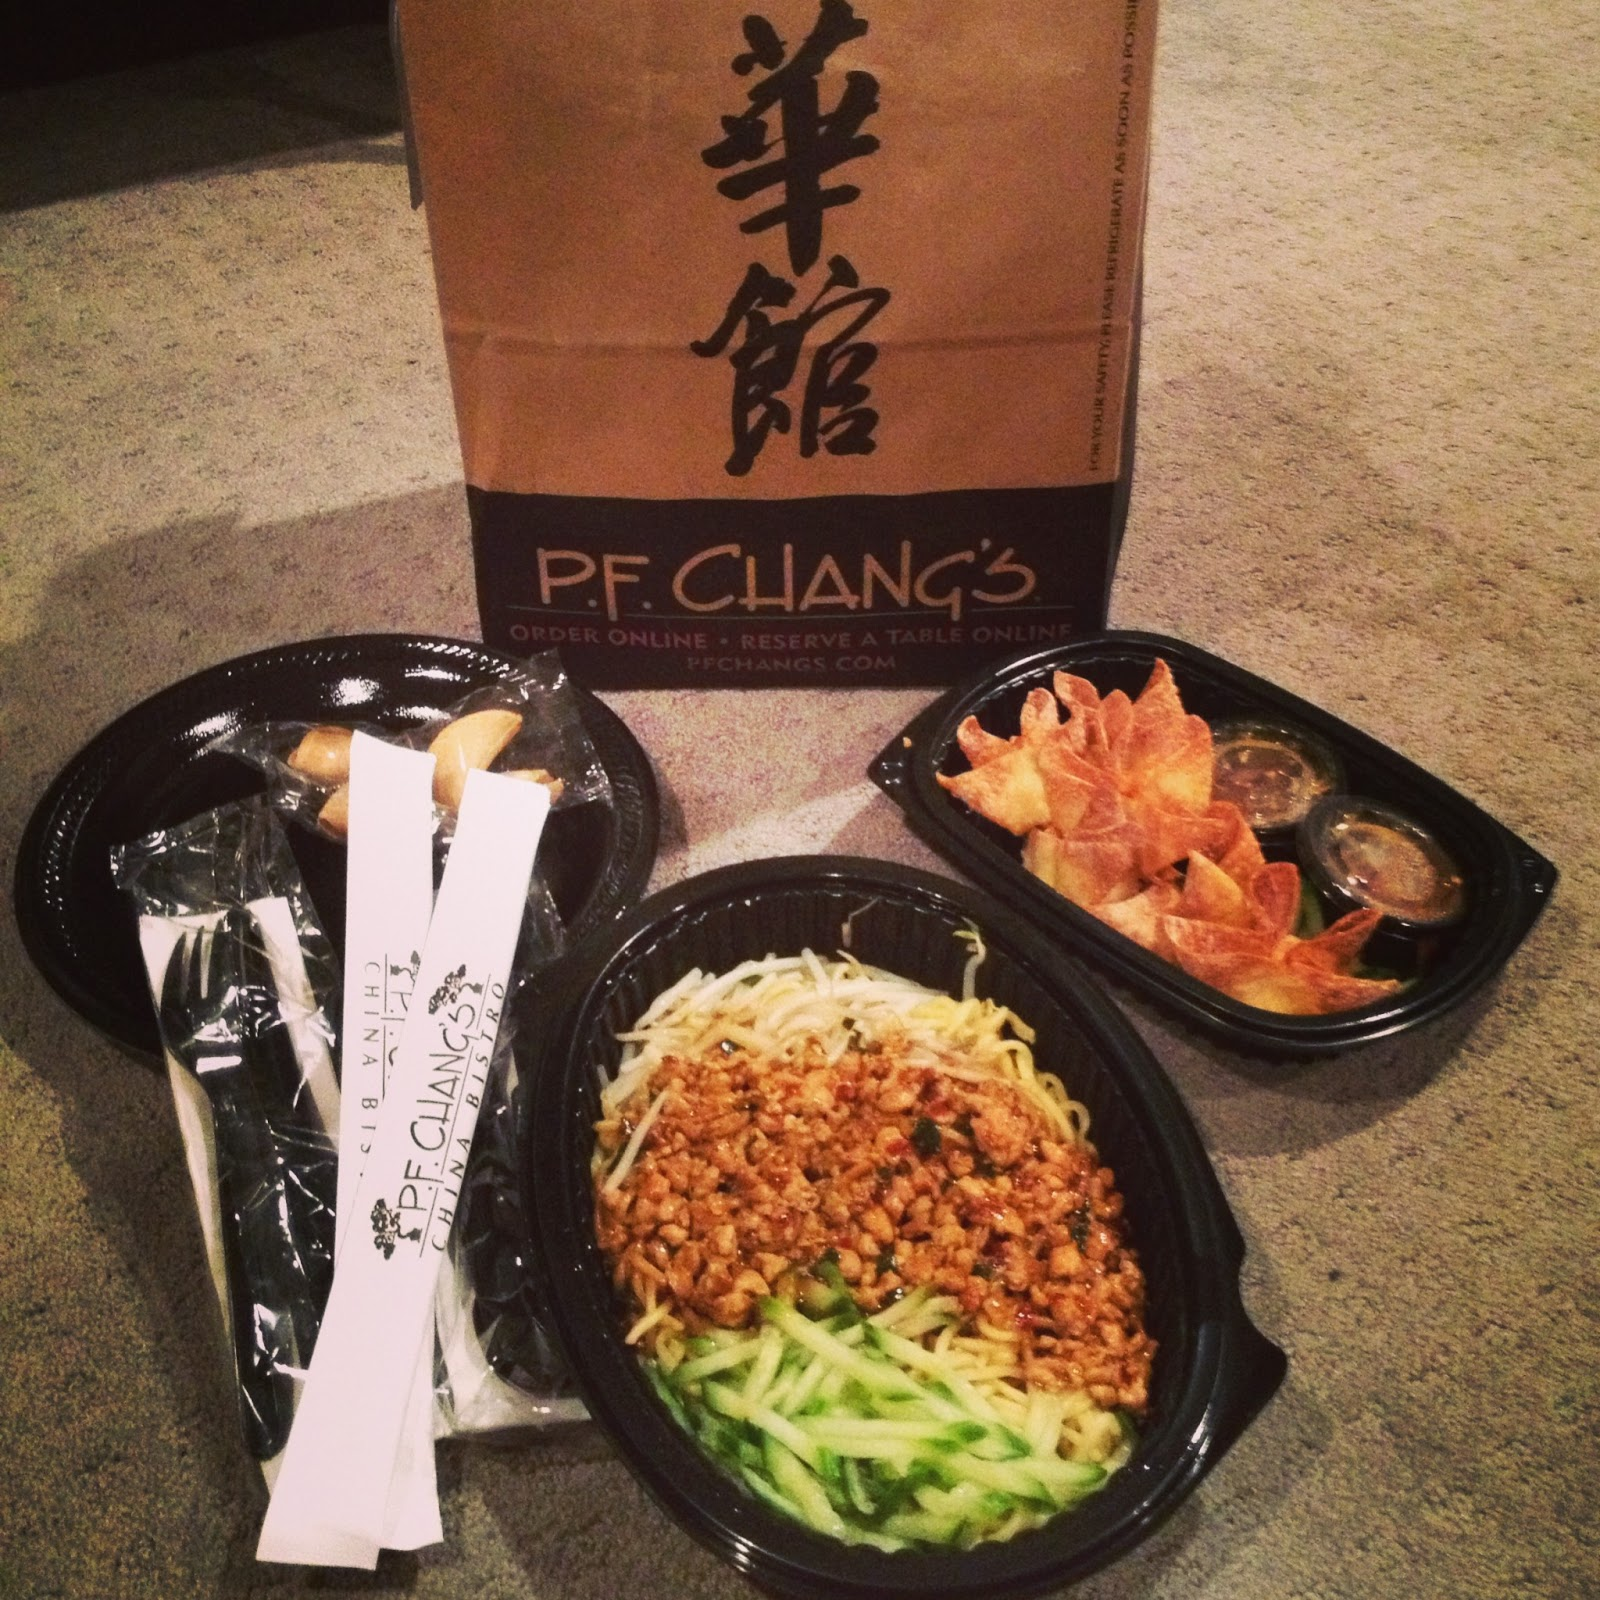 pf changs, pf changs take out, chop sticks, dan dan noodles, crab wontons, wontons, take out, Chinese food, food at home, utah, food chain, spicy plum sauce, sprouts, cucumber, crab, delicious food, eat me, good food chicken,